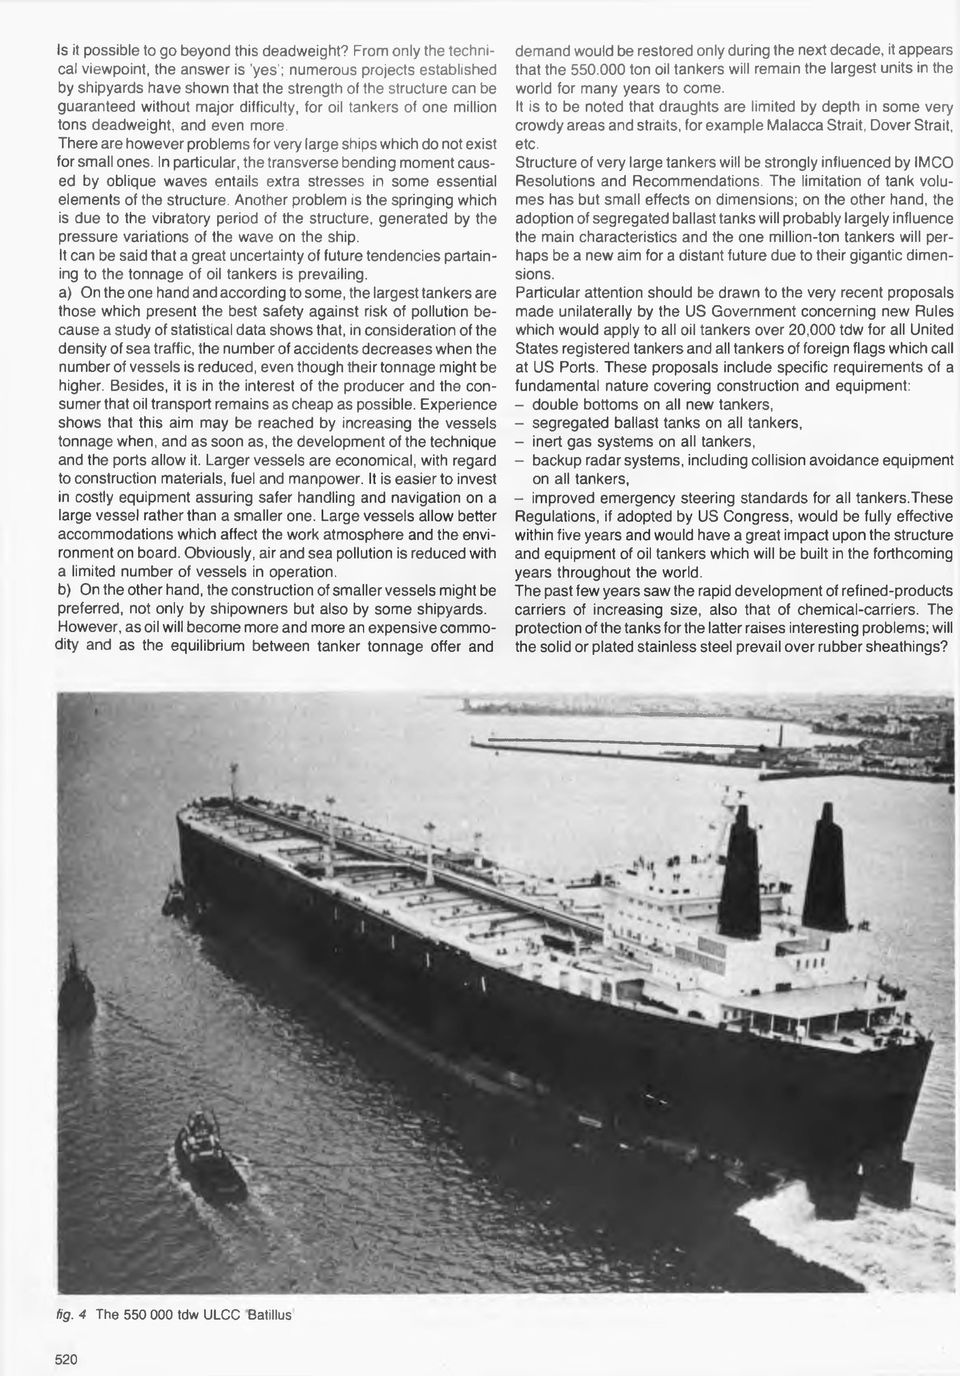 tankers of one million tons deadweight, and even more. There are however problems for very large ships which do not exist for small ones.